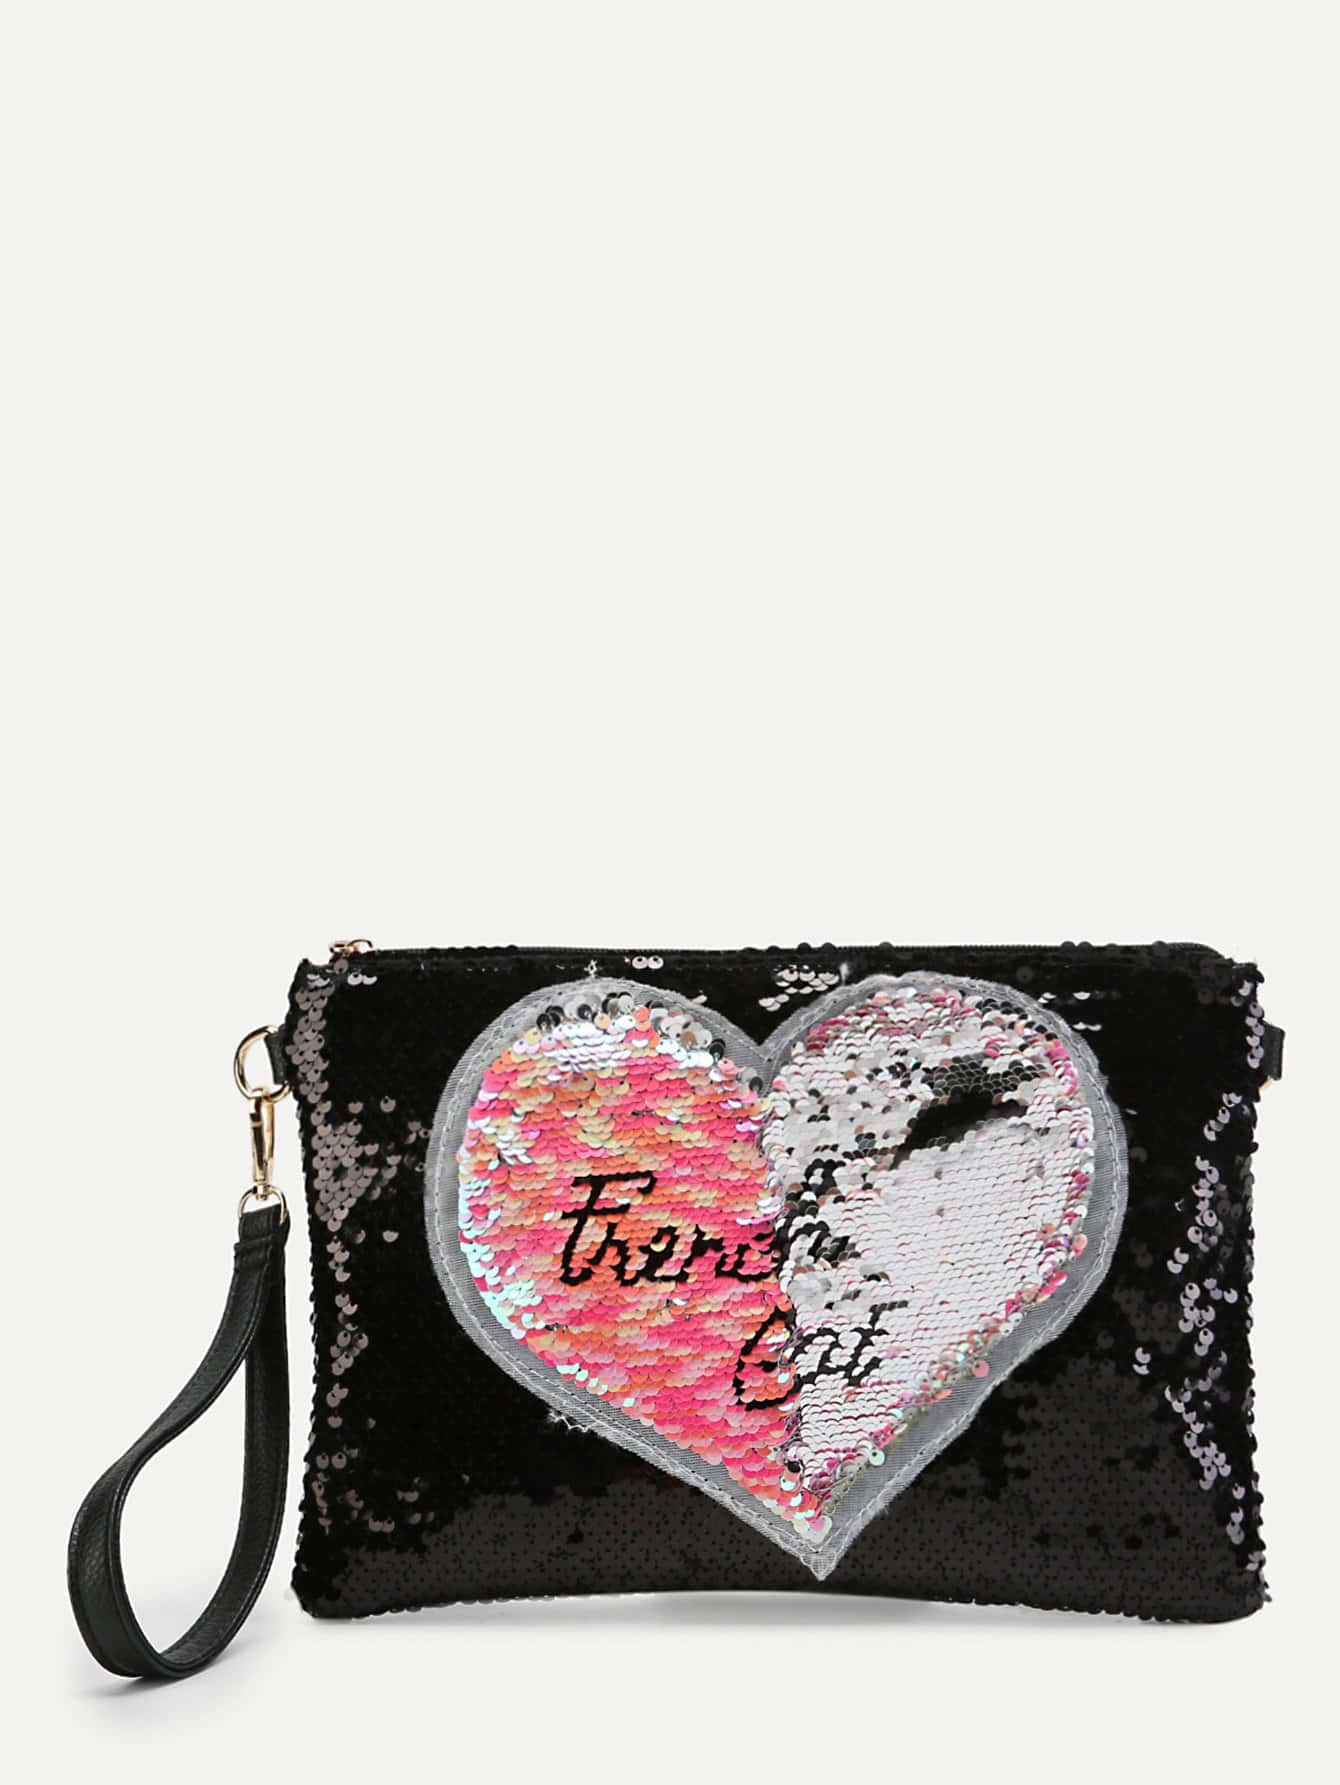 Sequin Overlay Heart Pattern Clutch Bag rhinestone applique heart pattern crystal clutch evening party bags